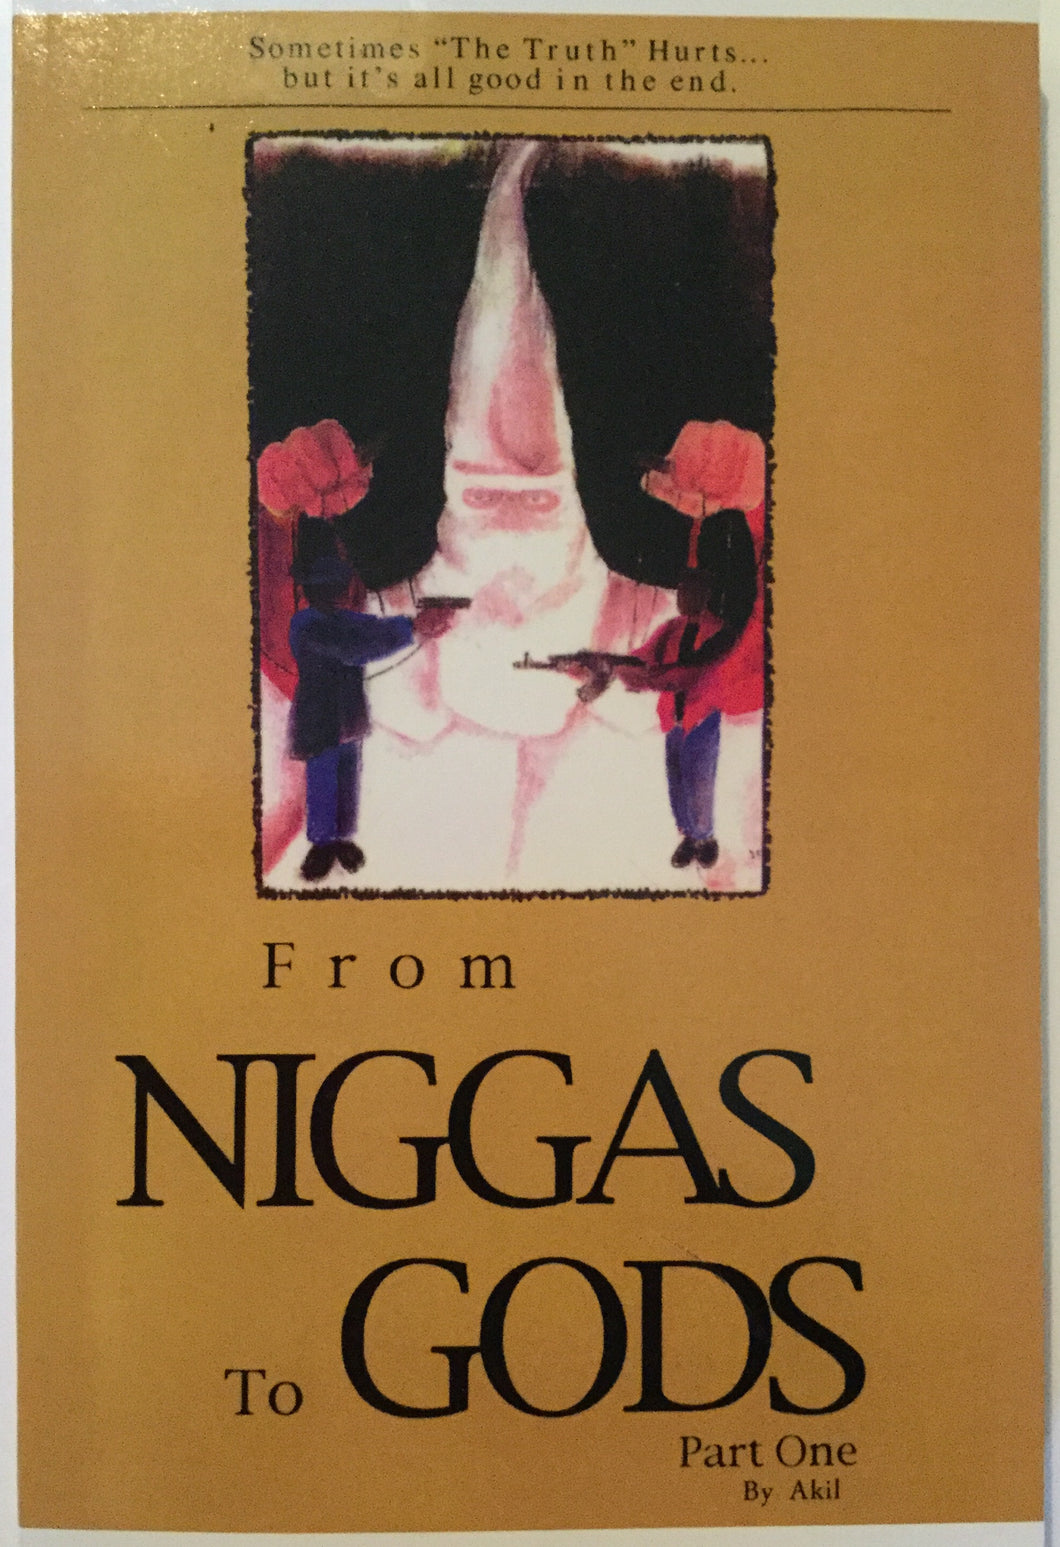 From Niggas to gods Part  One by Akil